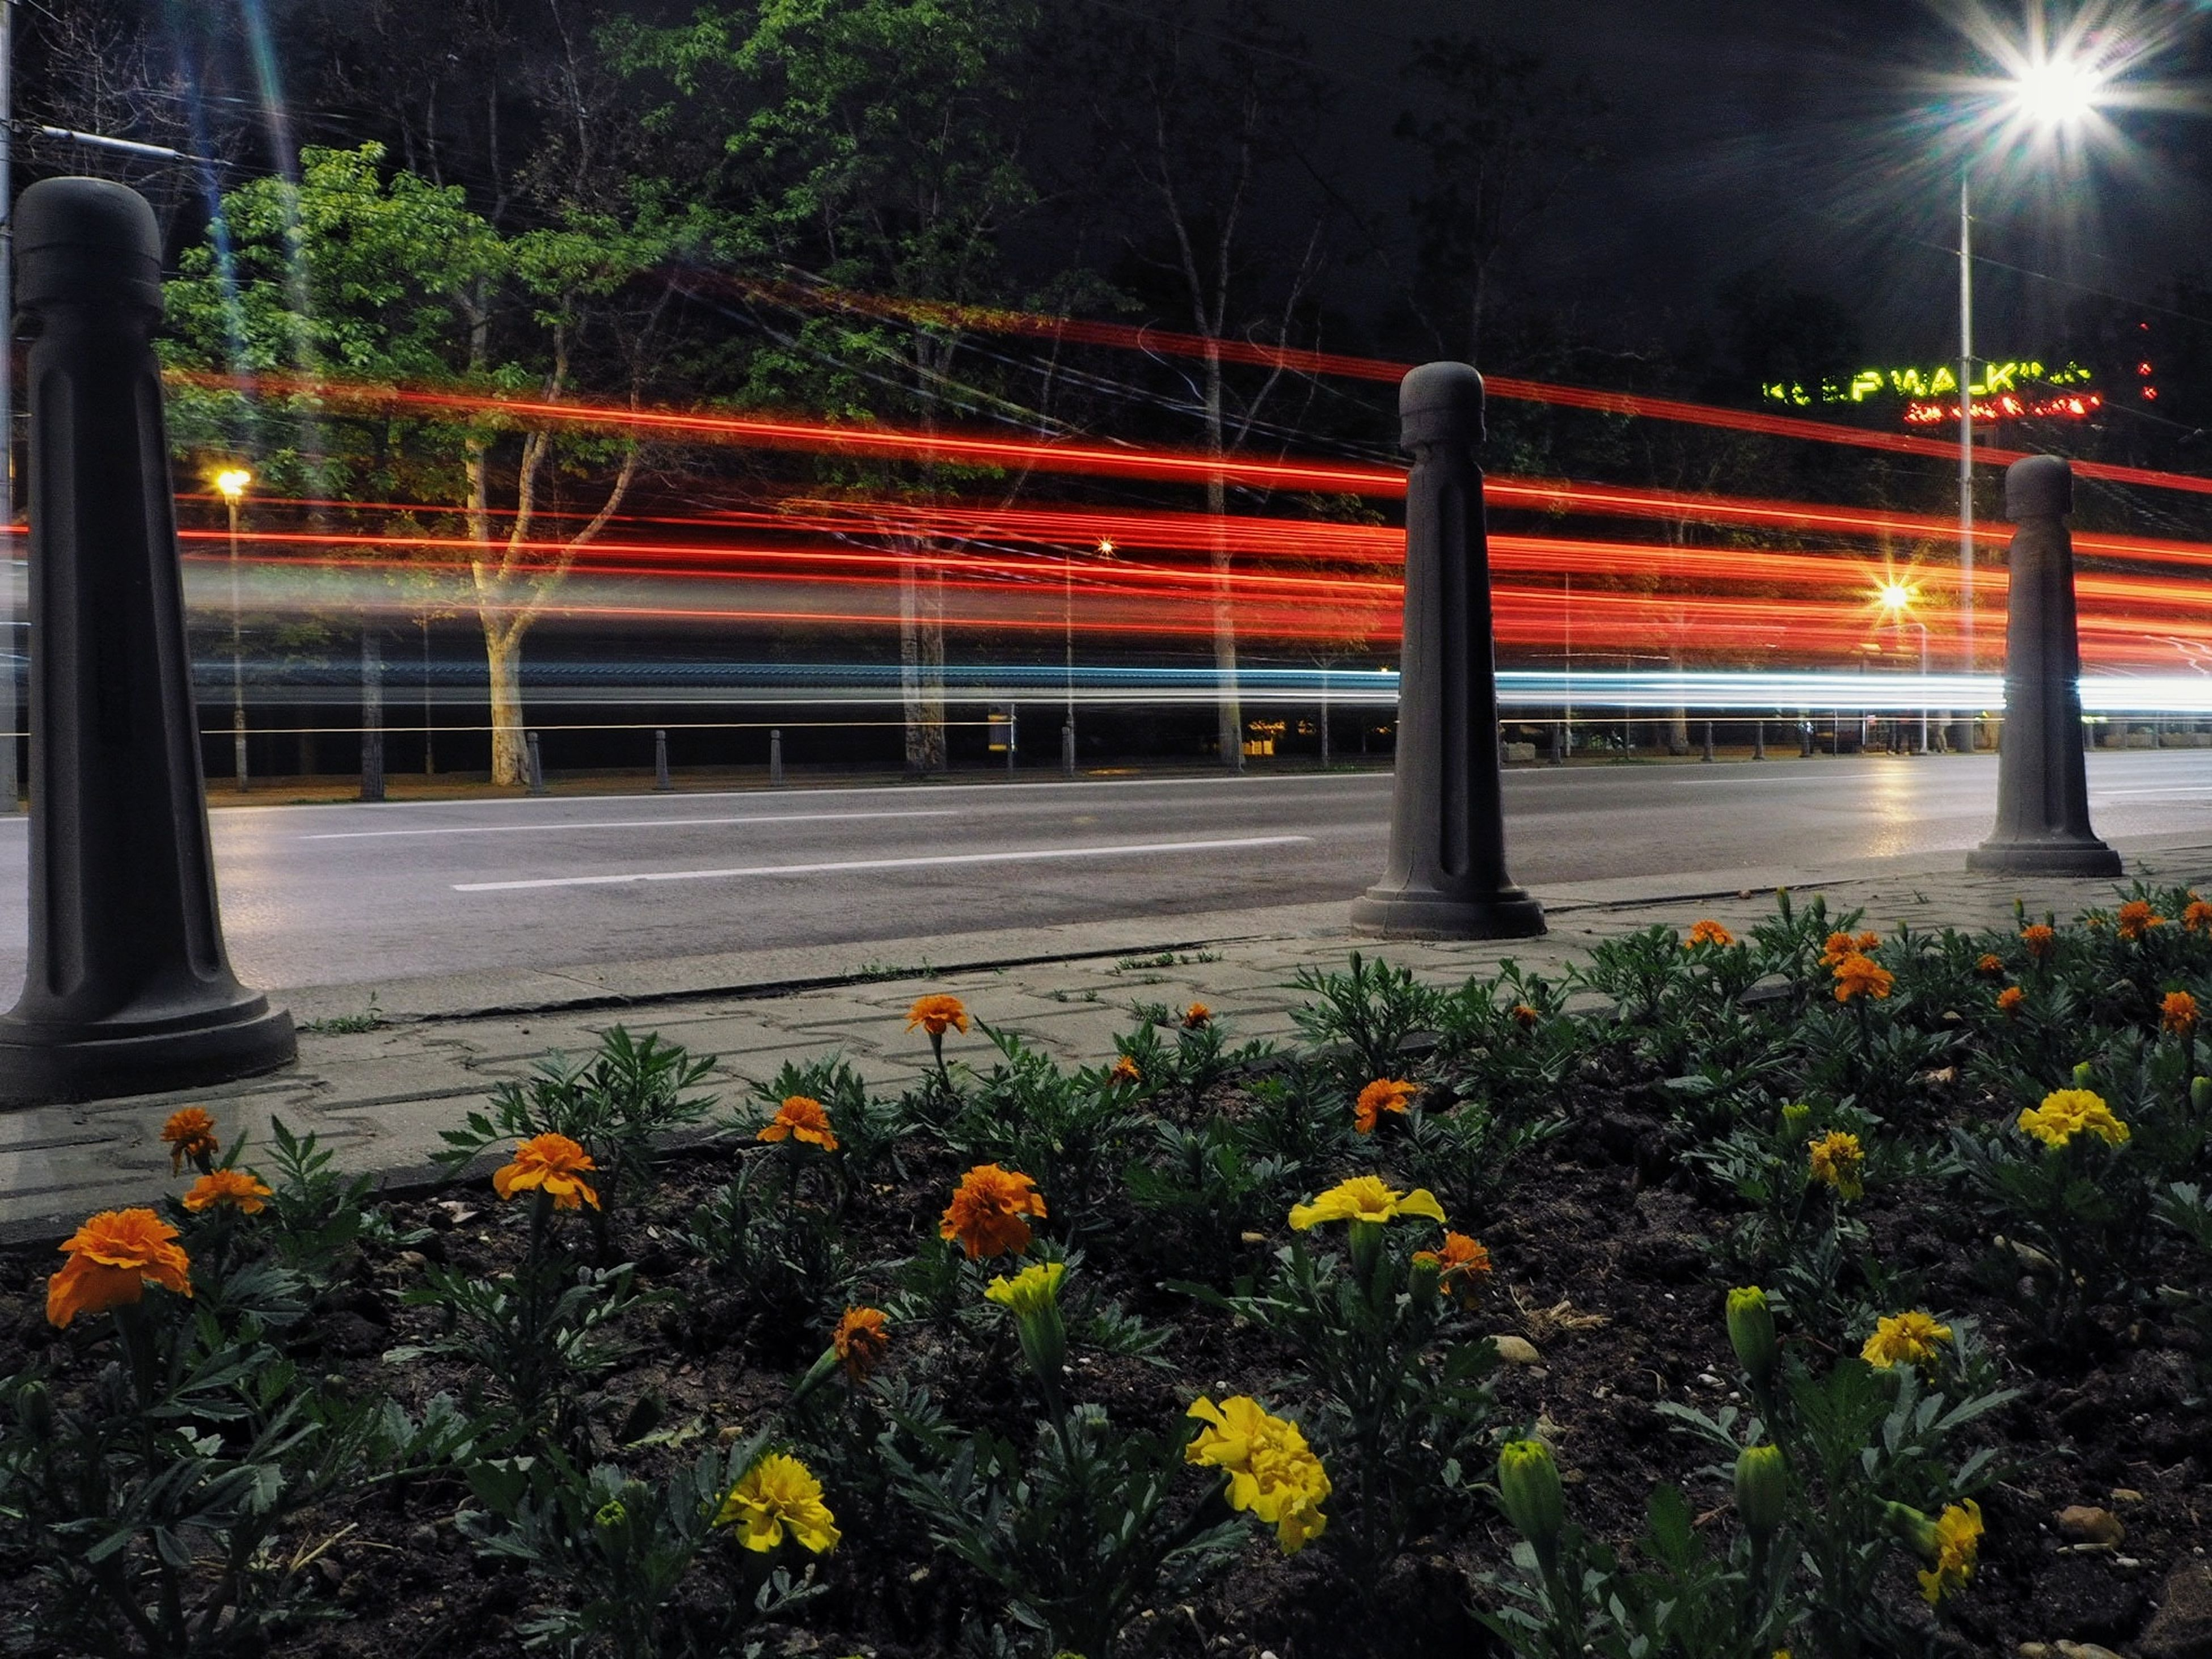 flower, illuminated, growth, nature, plant, outdoors, no people, night, beauty in nature, transportation, yellow, tree